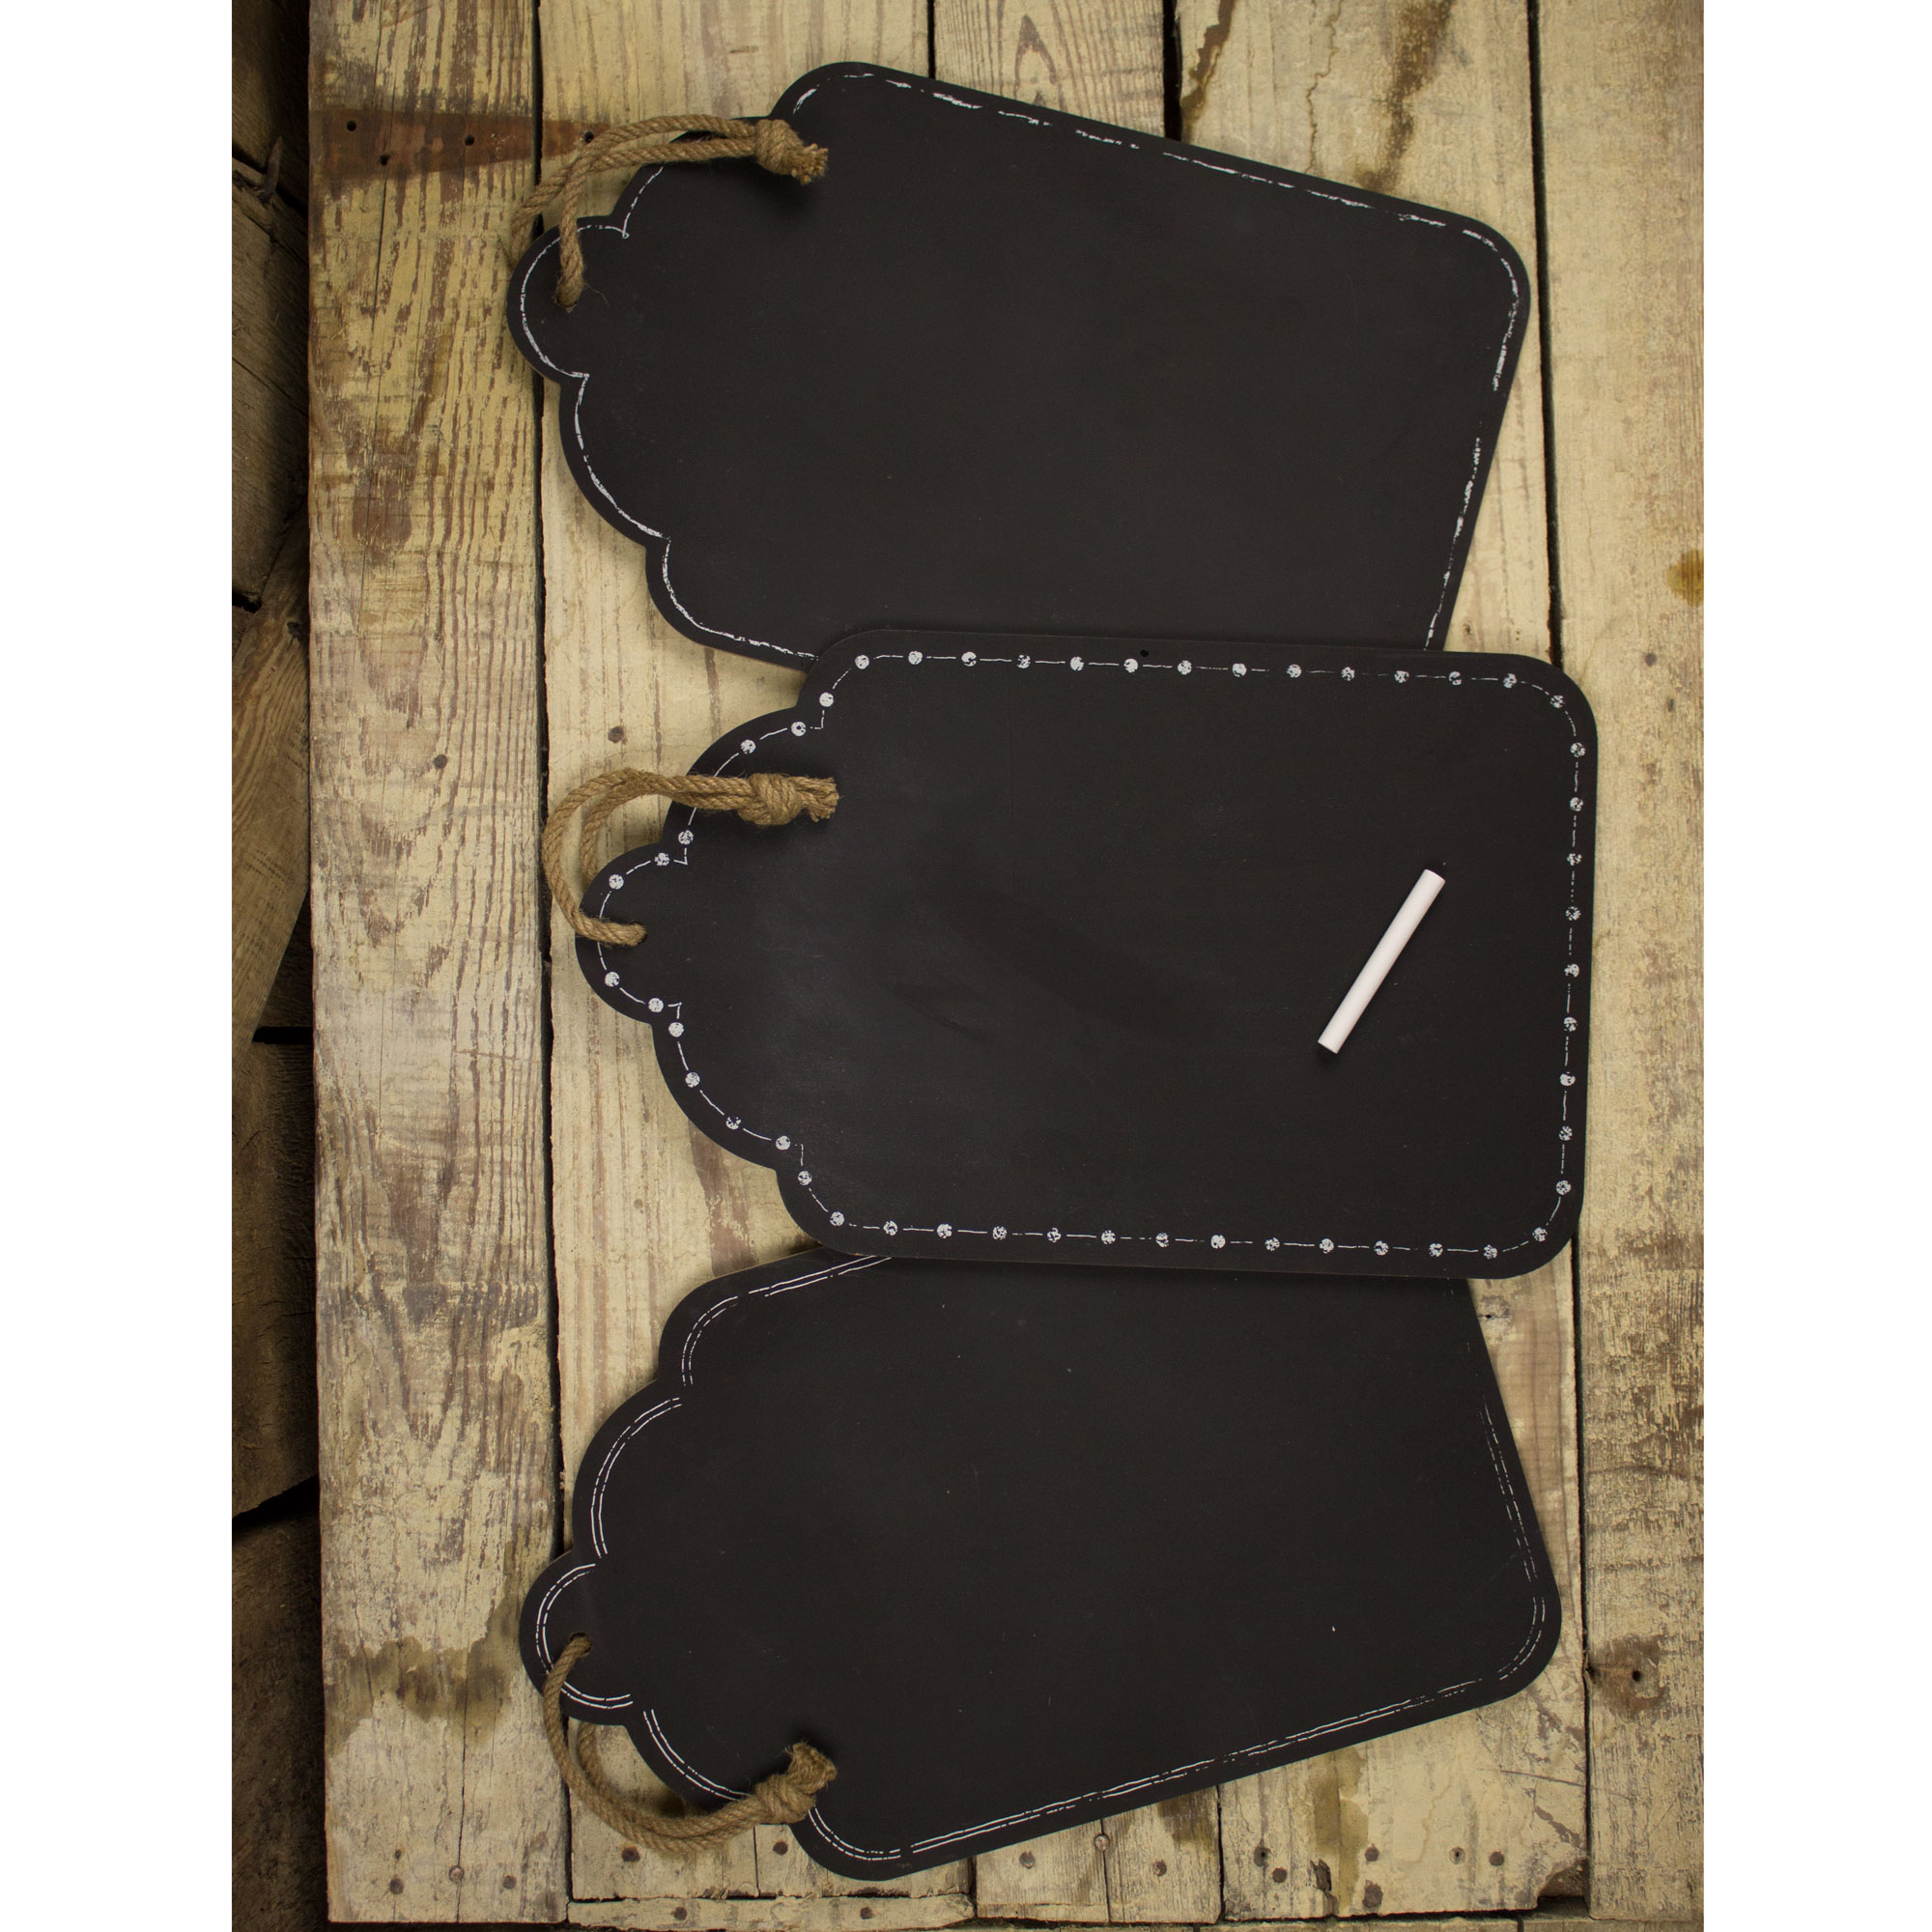 Large Hanging Chalkboard Set